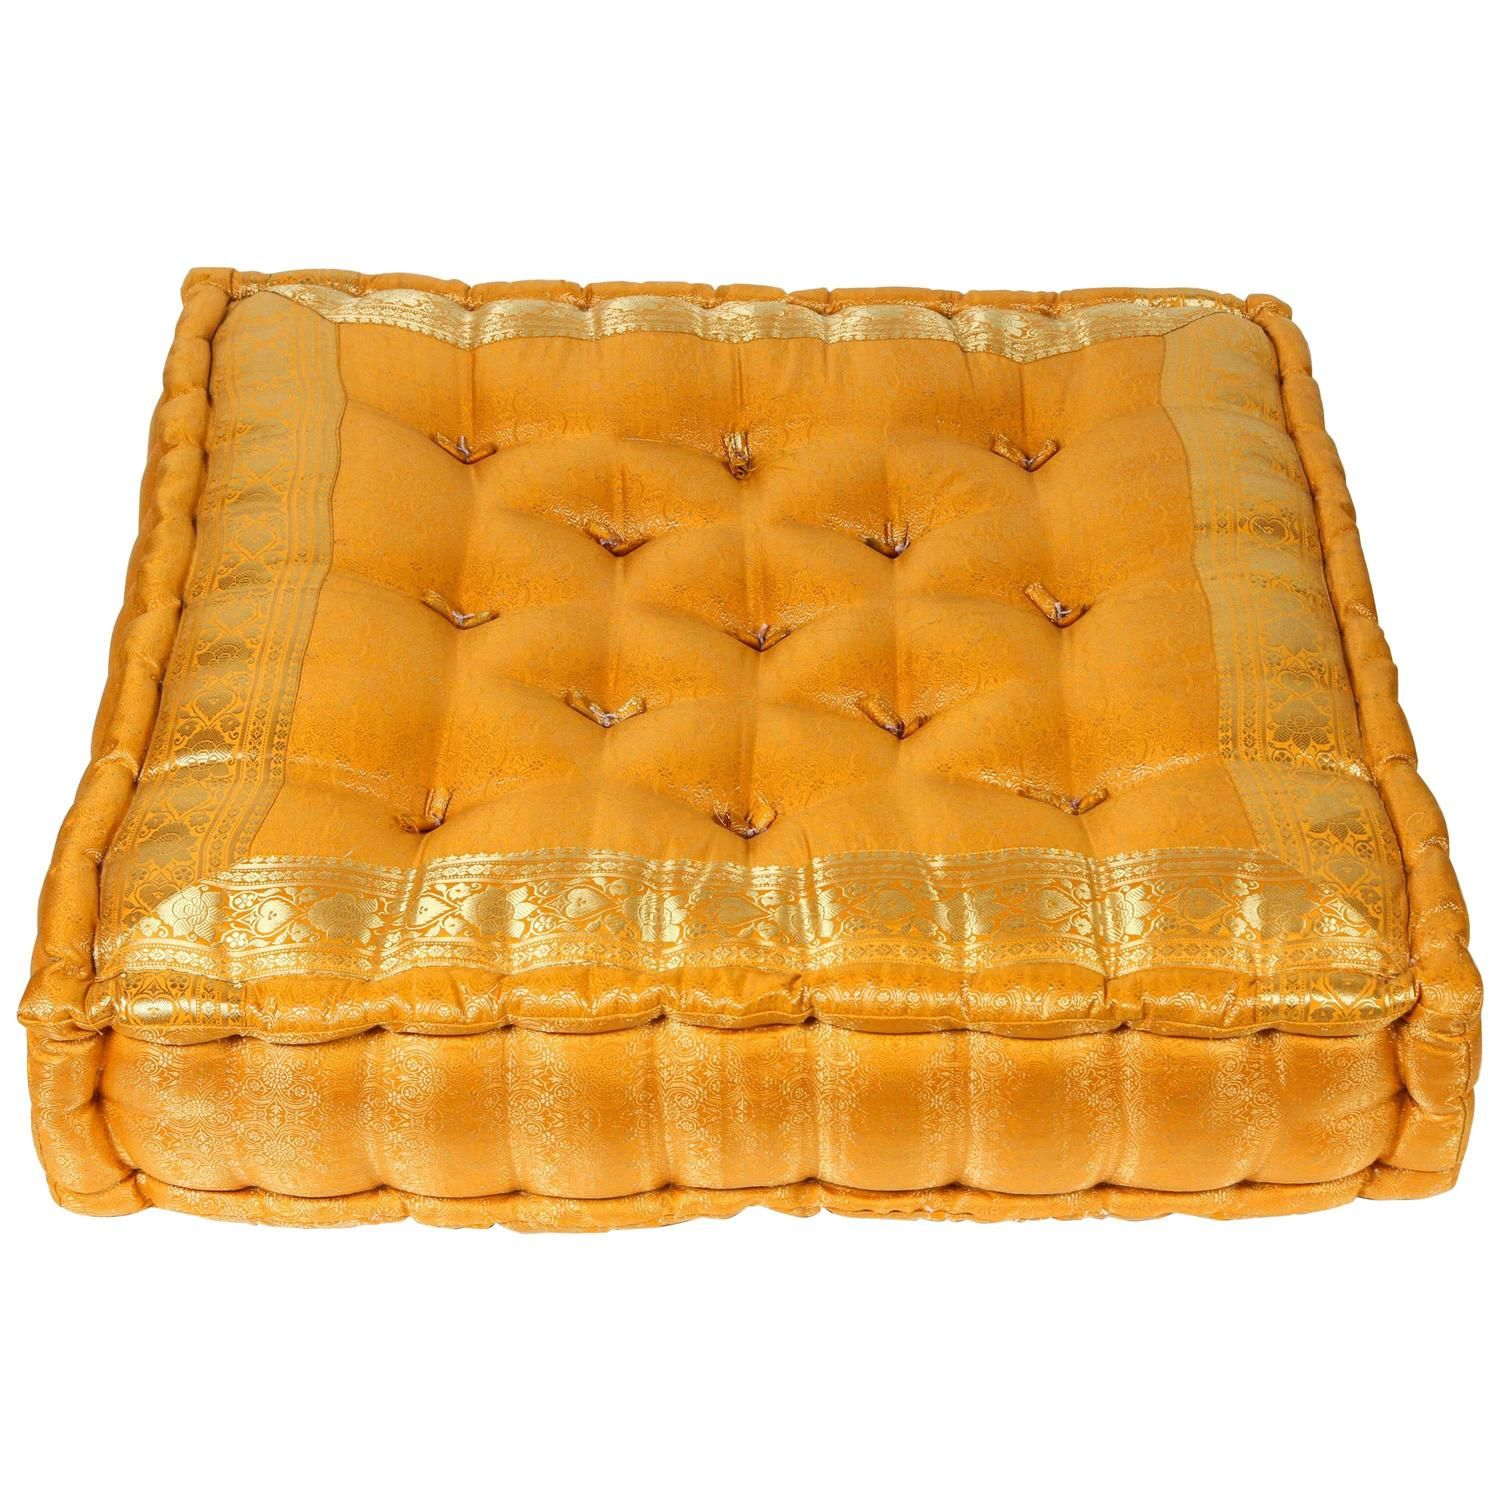 Moroccan Oversized Yellow And Gold Tufted Floor Pillow Cushion Floor Pillows Floor Seating Floor Cushions Living Room